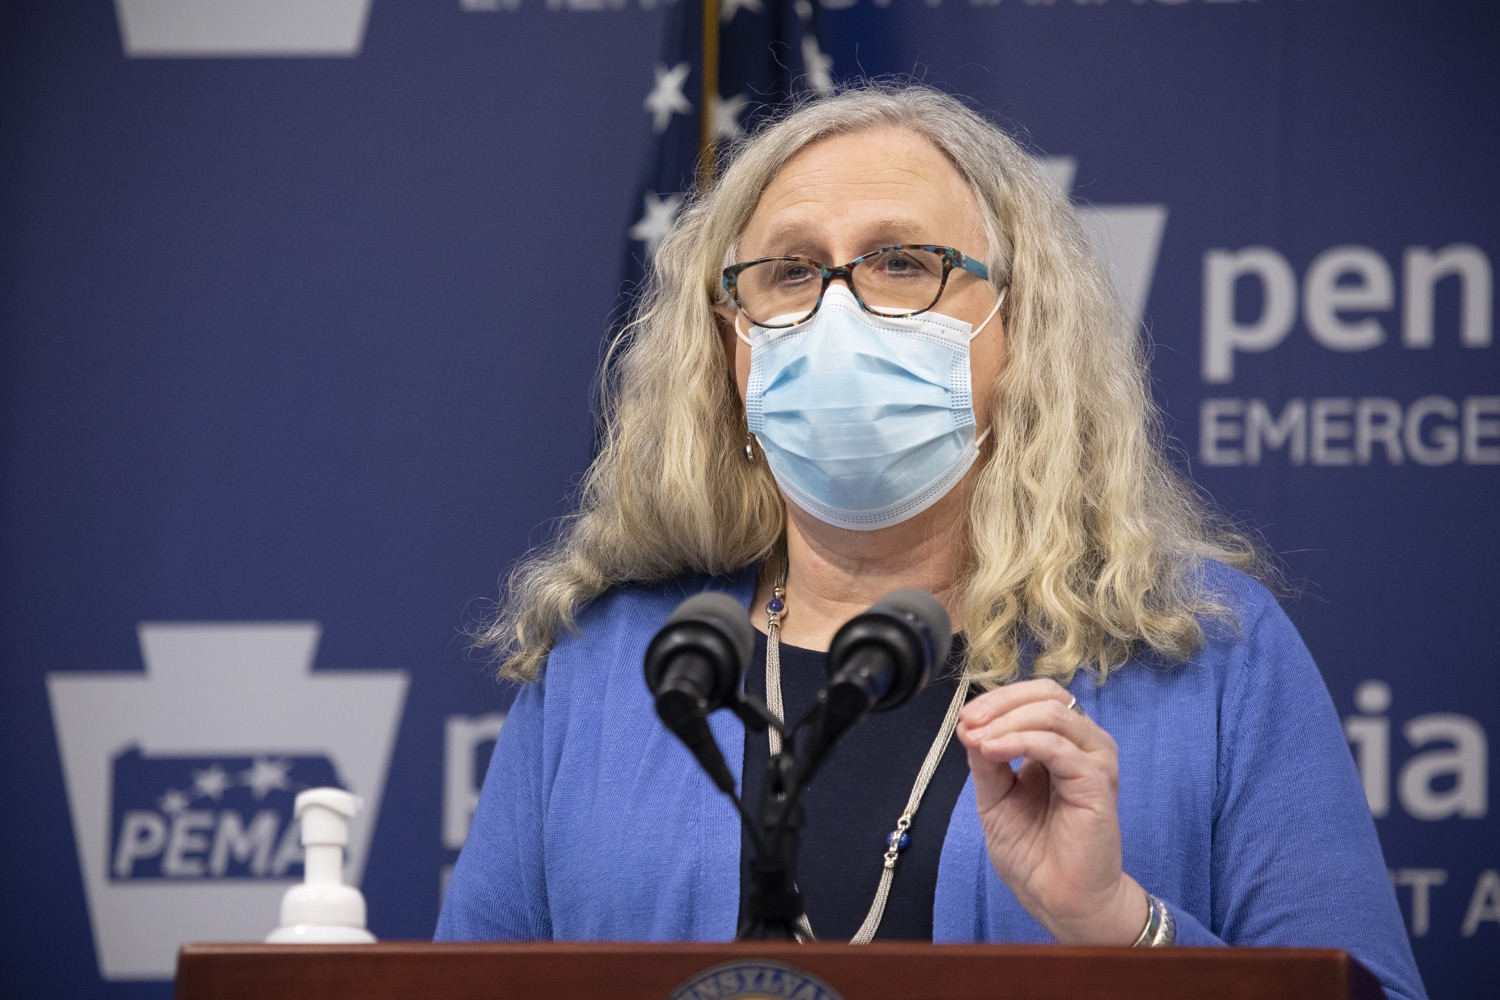 "<a href=""https://filesource.wostreaming.net/commonwealthofpa/photo/18405_gov_covidUpdate_dz_002.jpg"" target=""_blank"">⇣ Download Photo<br></a>Secretary of Health Dr. Rachel Levine speaking to the press.   With new modeling projecting 22,000 new COVID-19 cases per day in Pennsylvania in December, Governor Tom Wolf and Secretary of Health Dr. Rachel Levine today announced new targeted mitigation measures to help stop the spread during this critical time. These include a robust enforcement plan targeted at chronic violators along with an effort to ensure schools are safe and in compliance with COVID safety plans. The administration is also encouraging Pennsylvanians to limit unnecessary travel and stay at home.  Harrisburg, Pa. November 23, 2020"